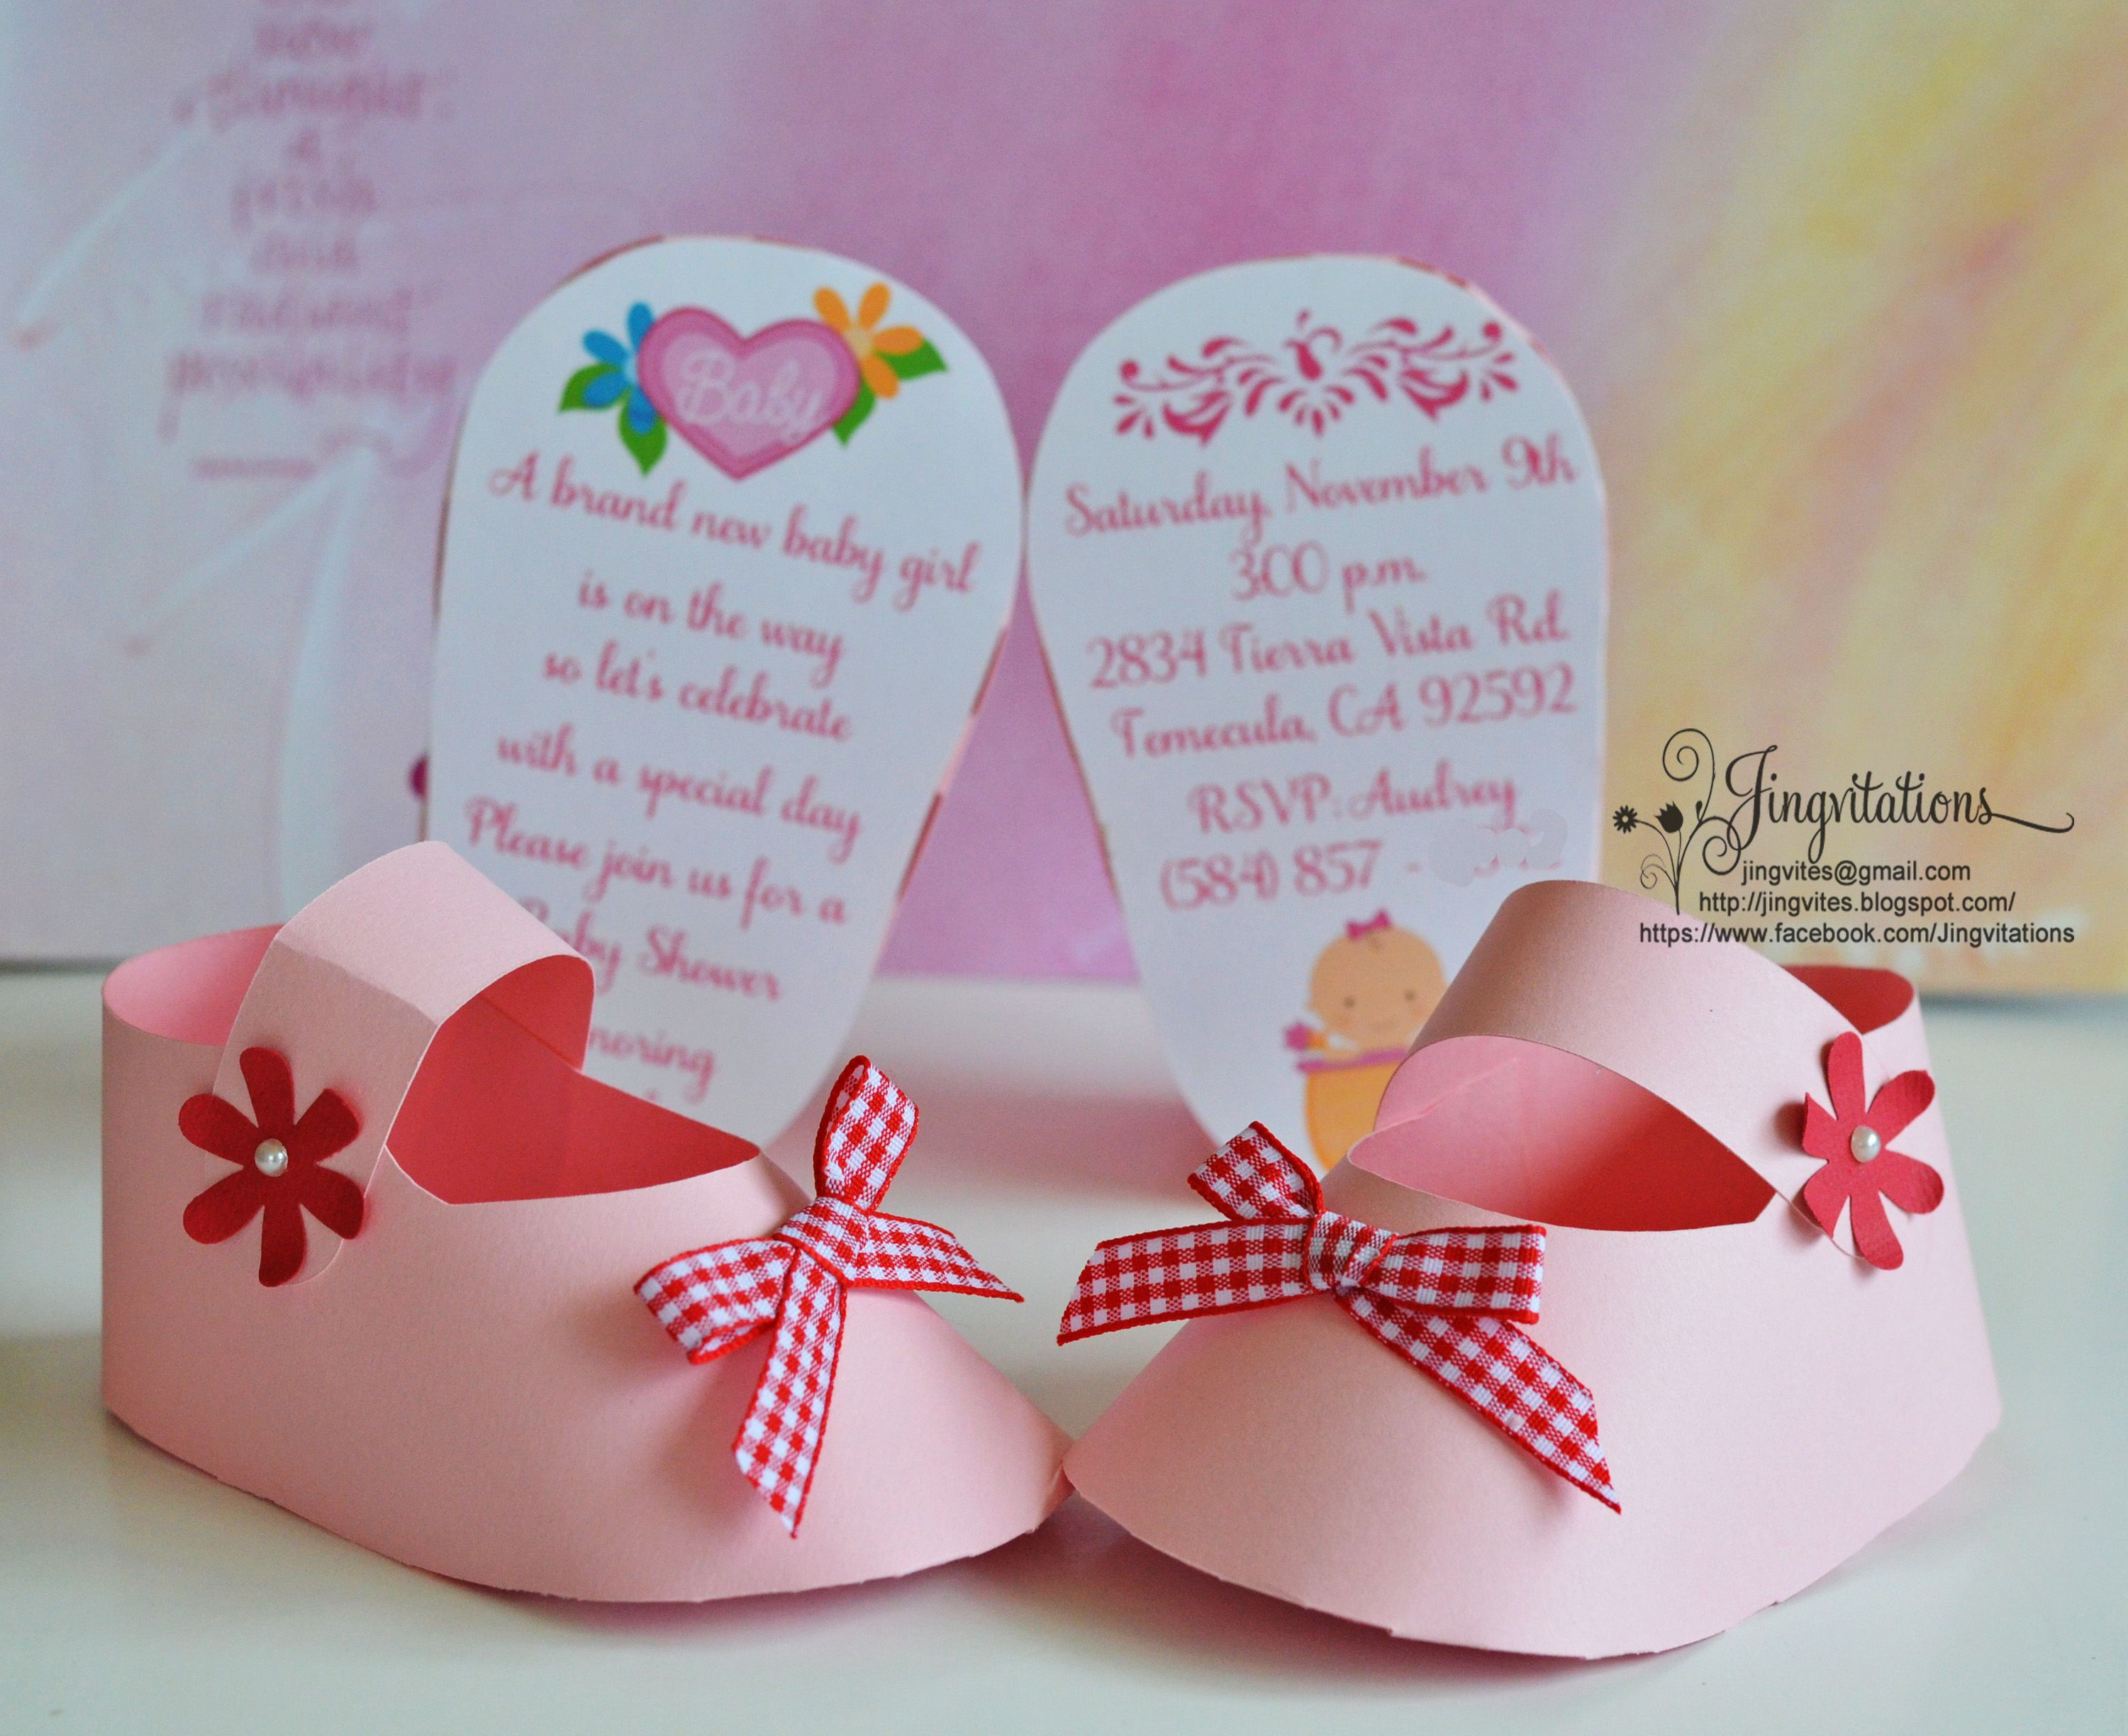 3D Invitations: Very Unique Baby Shoe Invites For Baby Shower